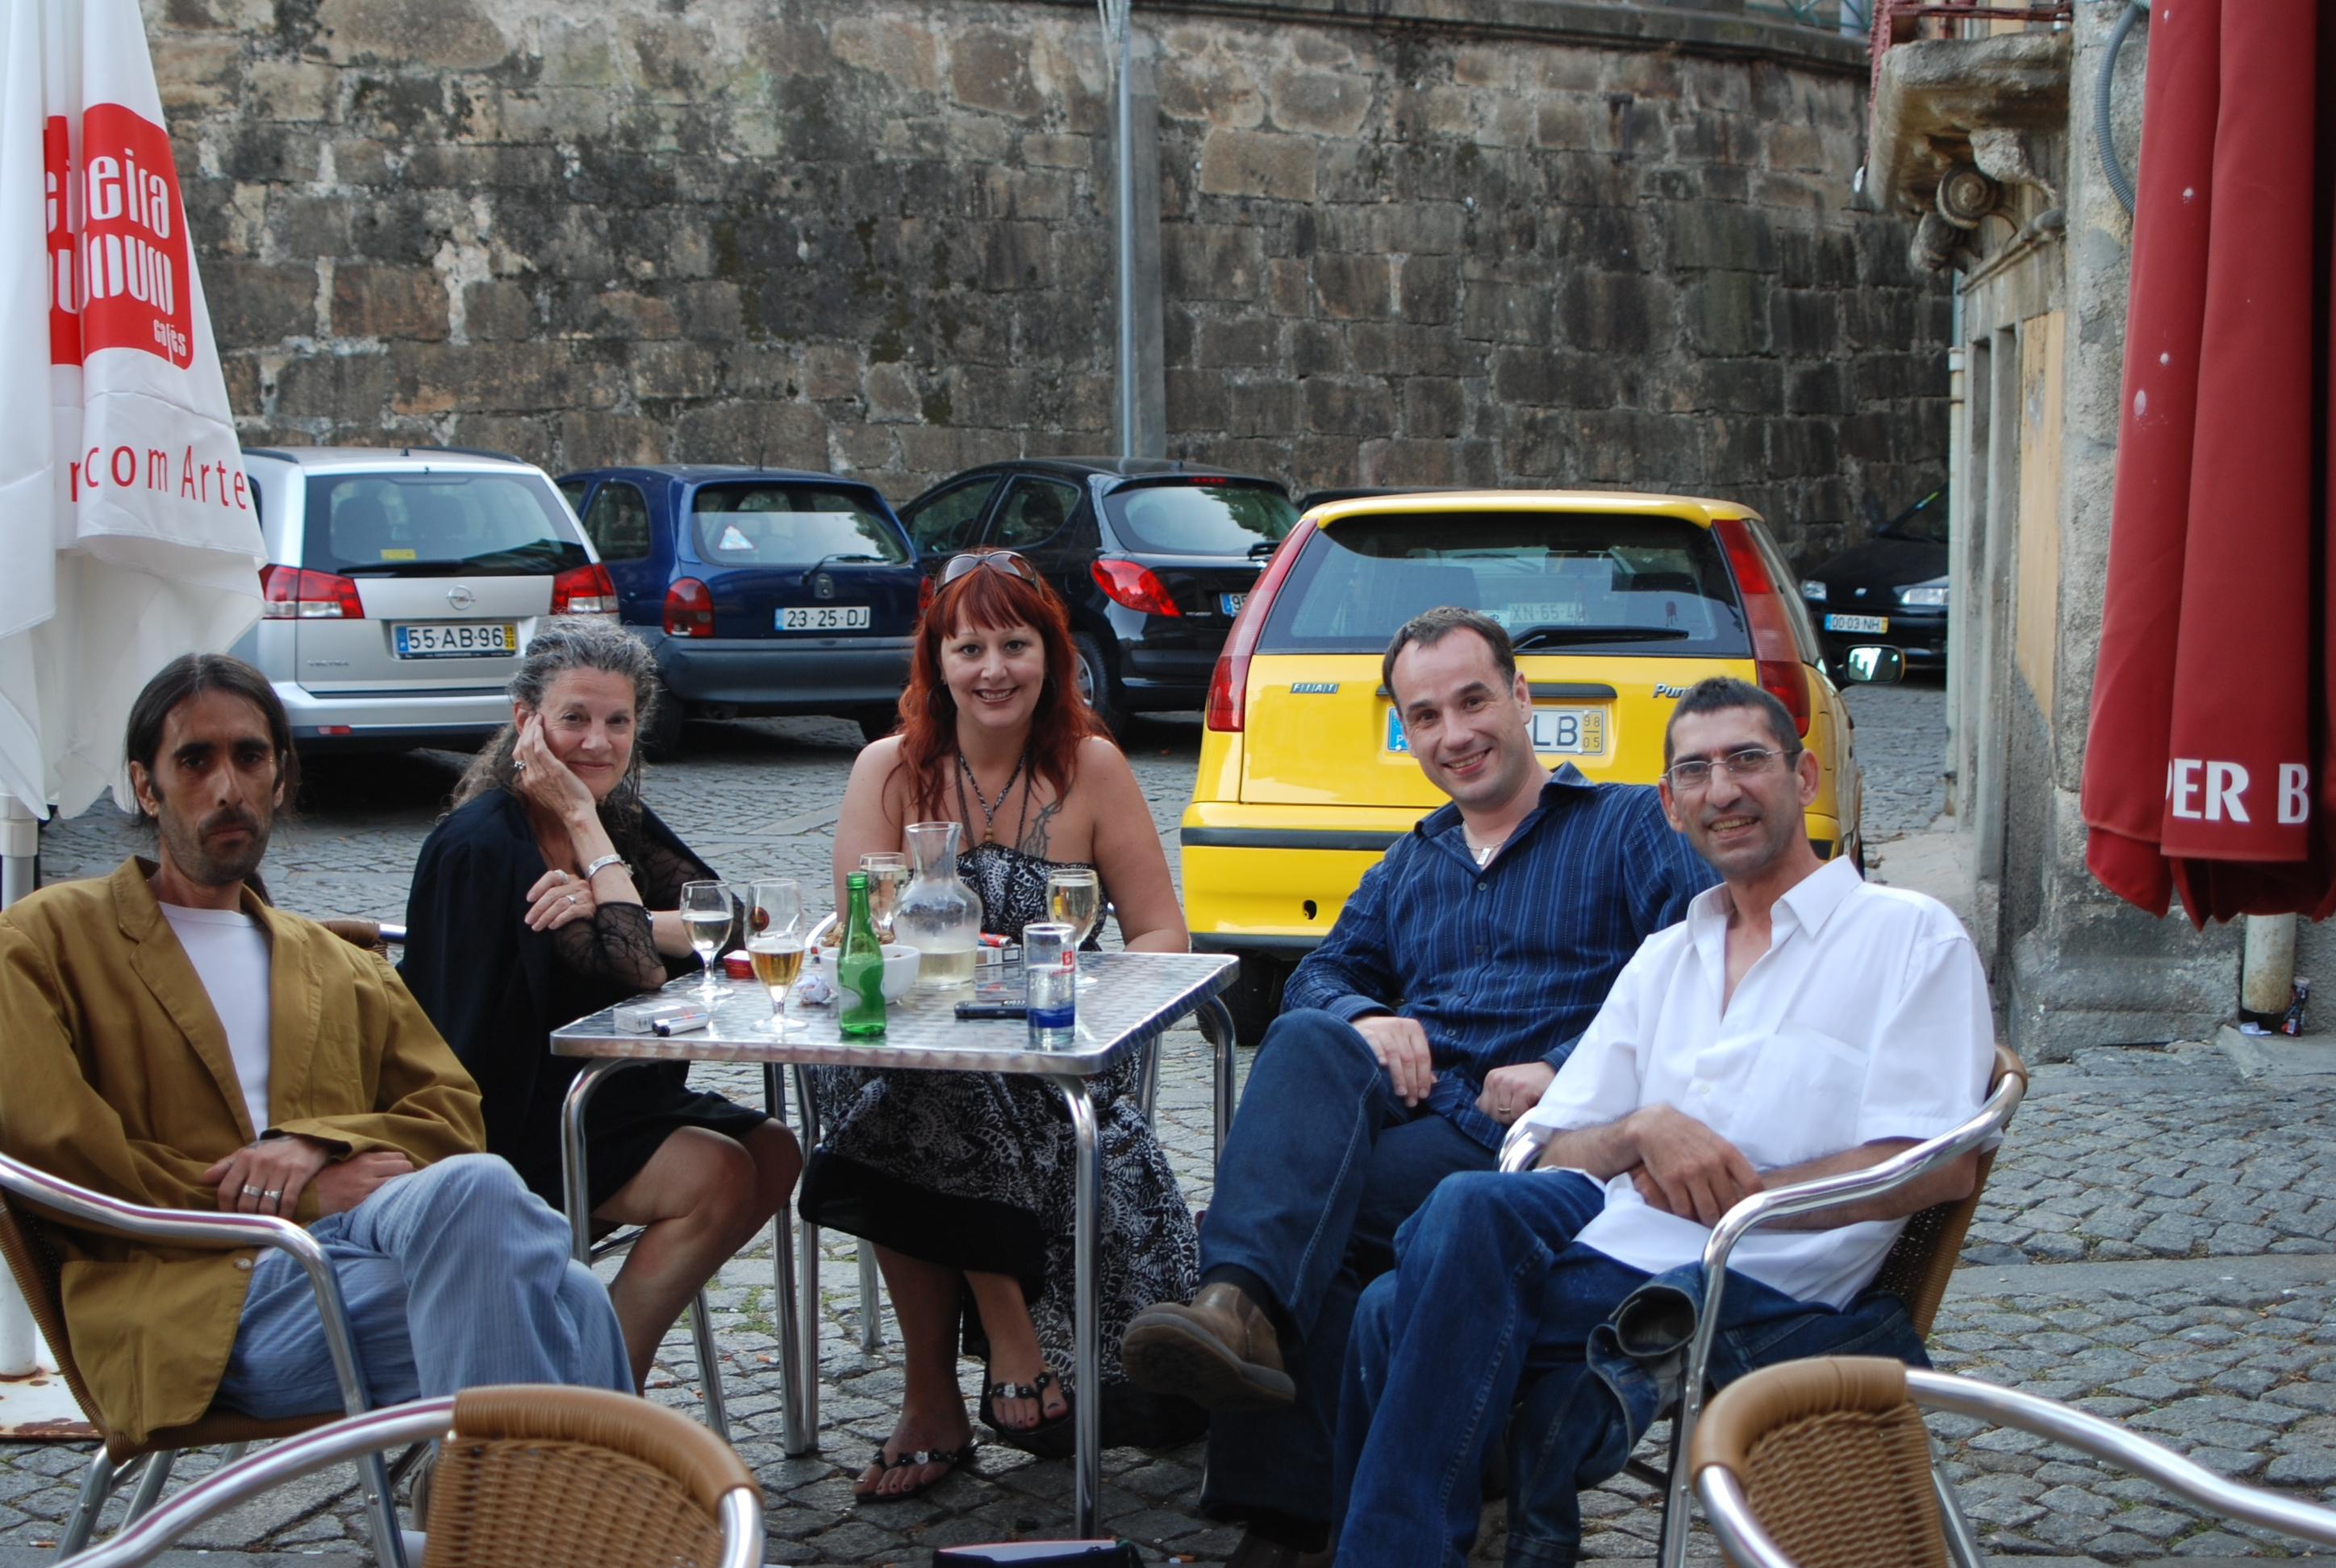 Sex Workers and Junkies Networking in Porto | INPUD's International